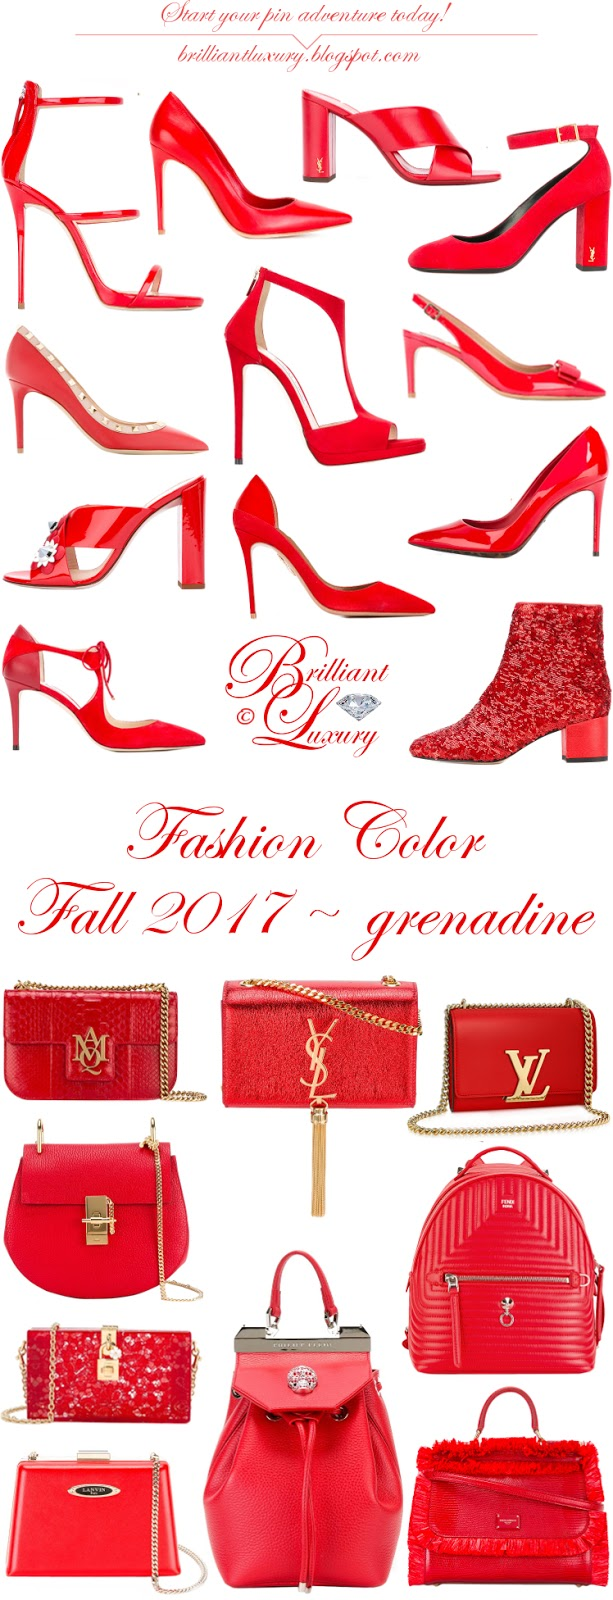 Brilliant Luxury ♦ Fashion Color Fall 2017 ~ grenadine